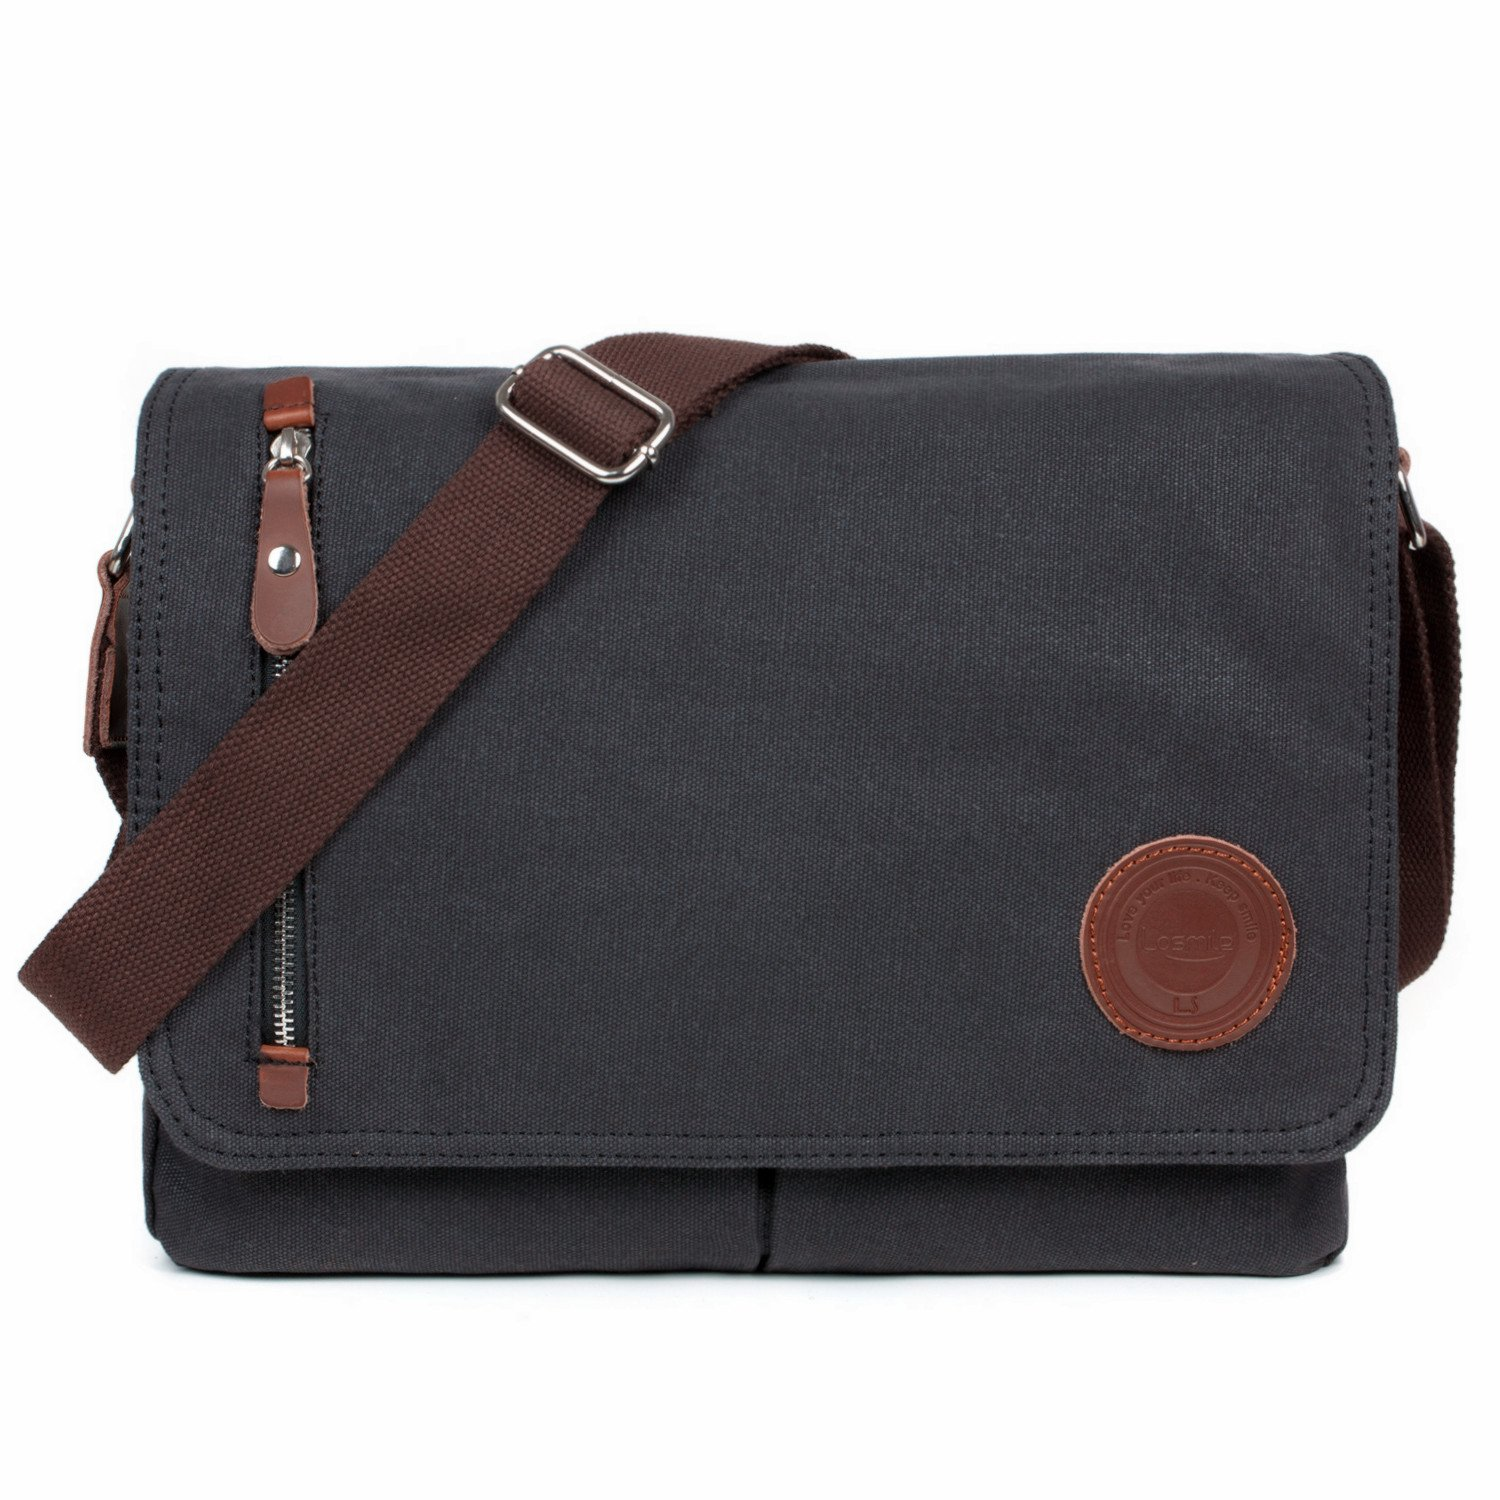 7f3f91285fee LOSMILE Mens Canvas Messenger Shoulder Bag.